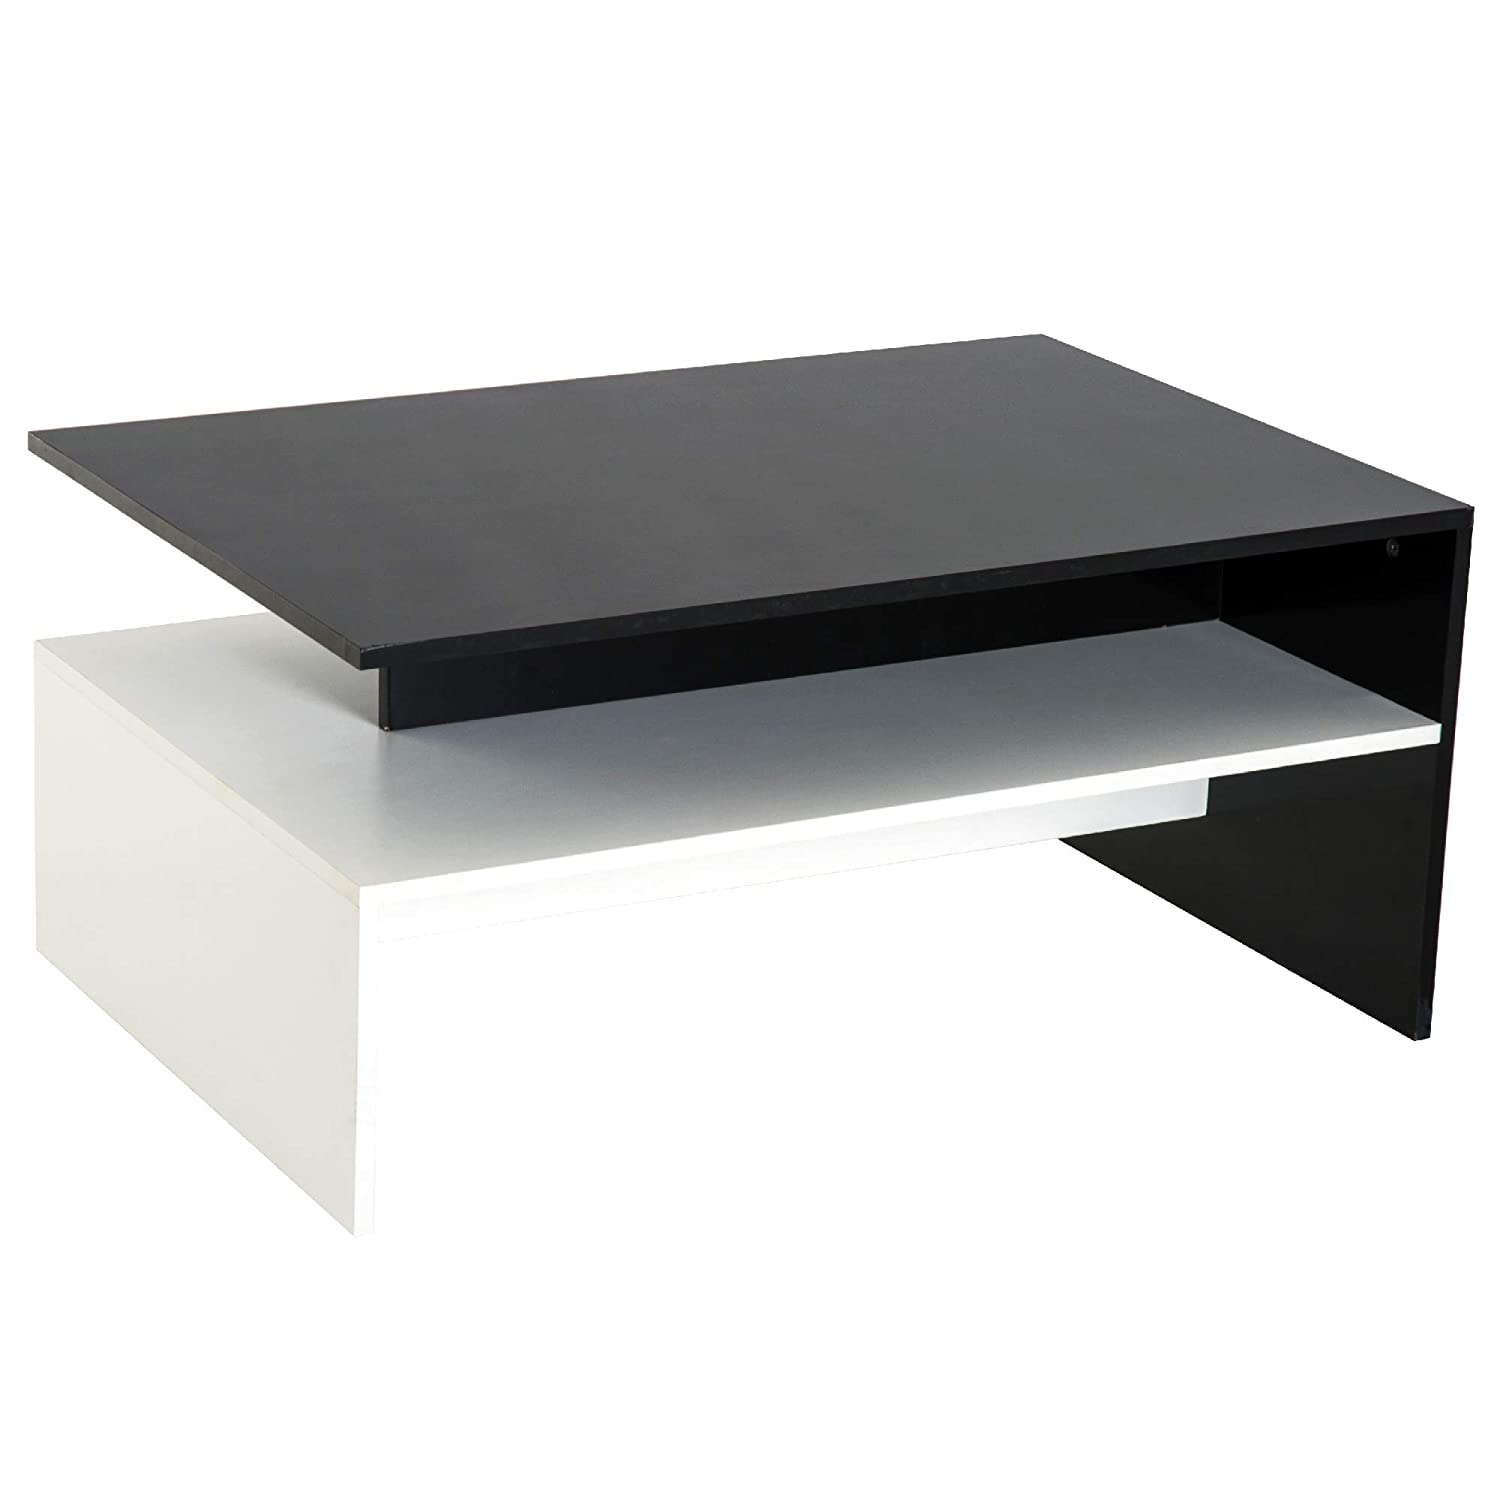 Minimalist Coffee Table Couch Sofa Side Cocktail Table w/Storage Shelf Living Room Home Office Furniture White/Black Aosom Canada